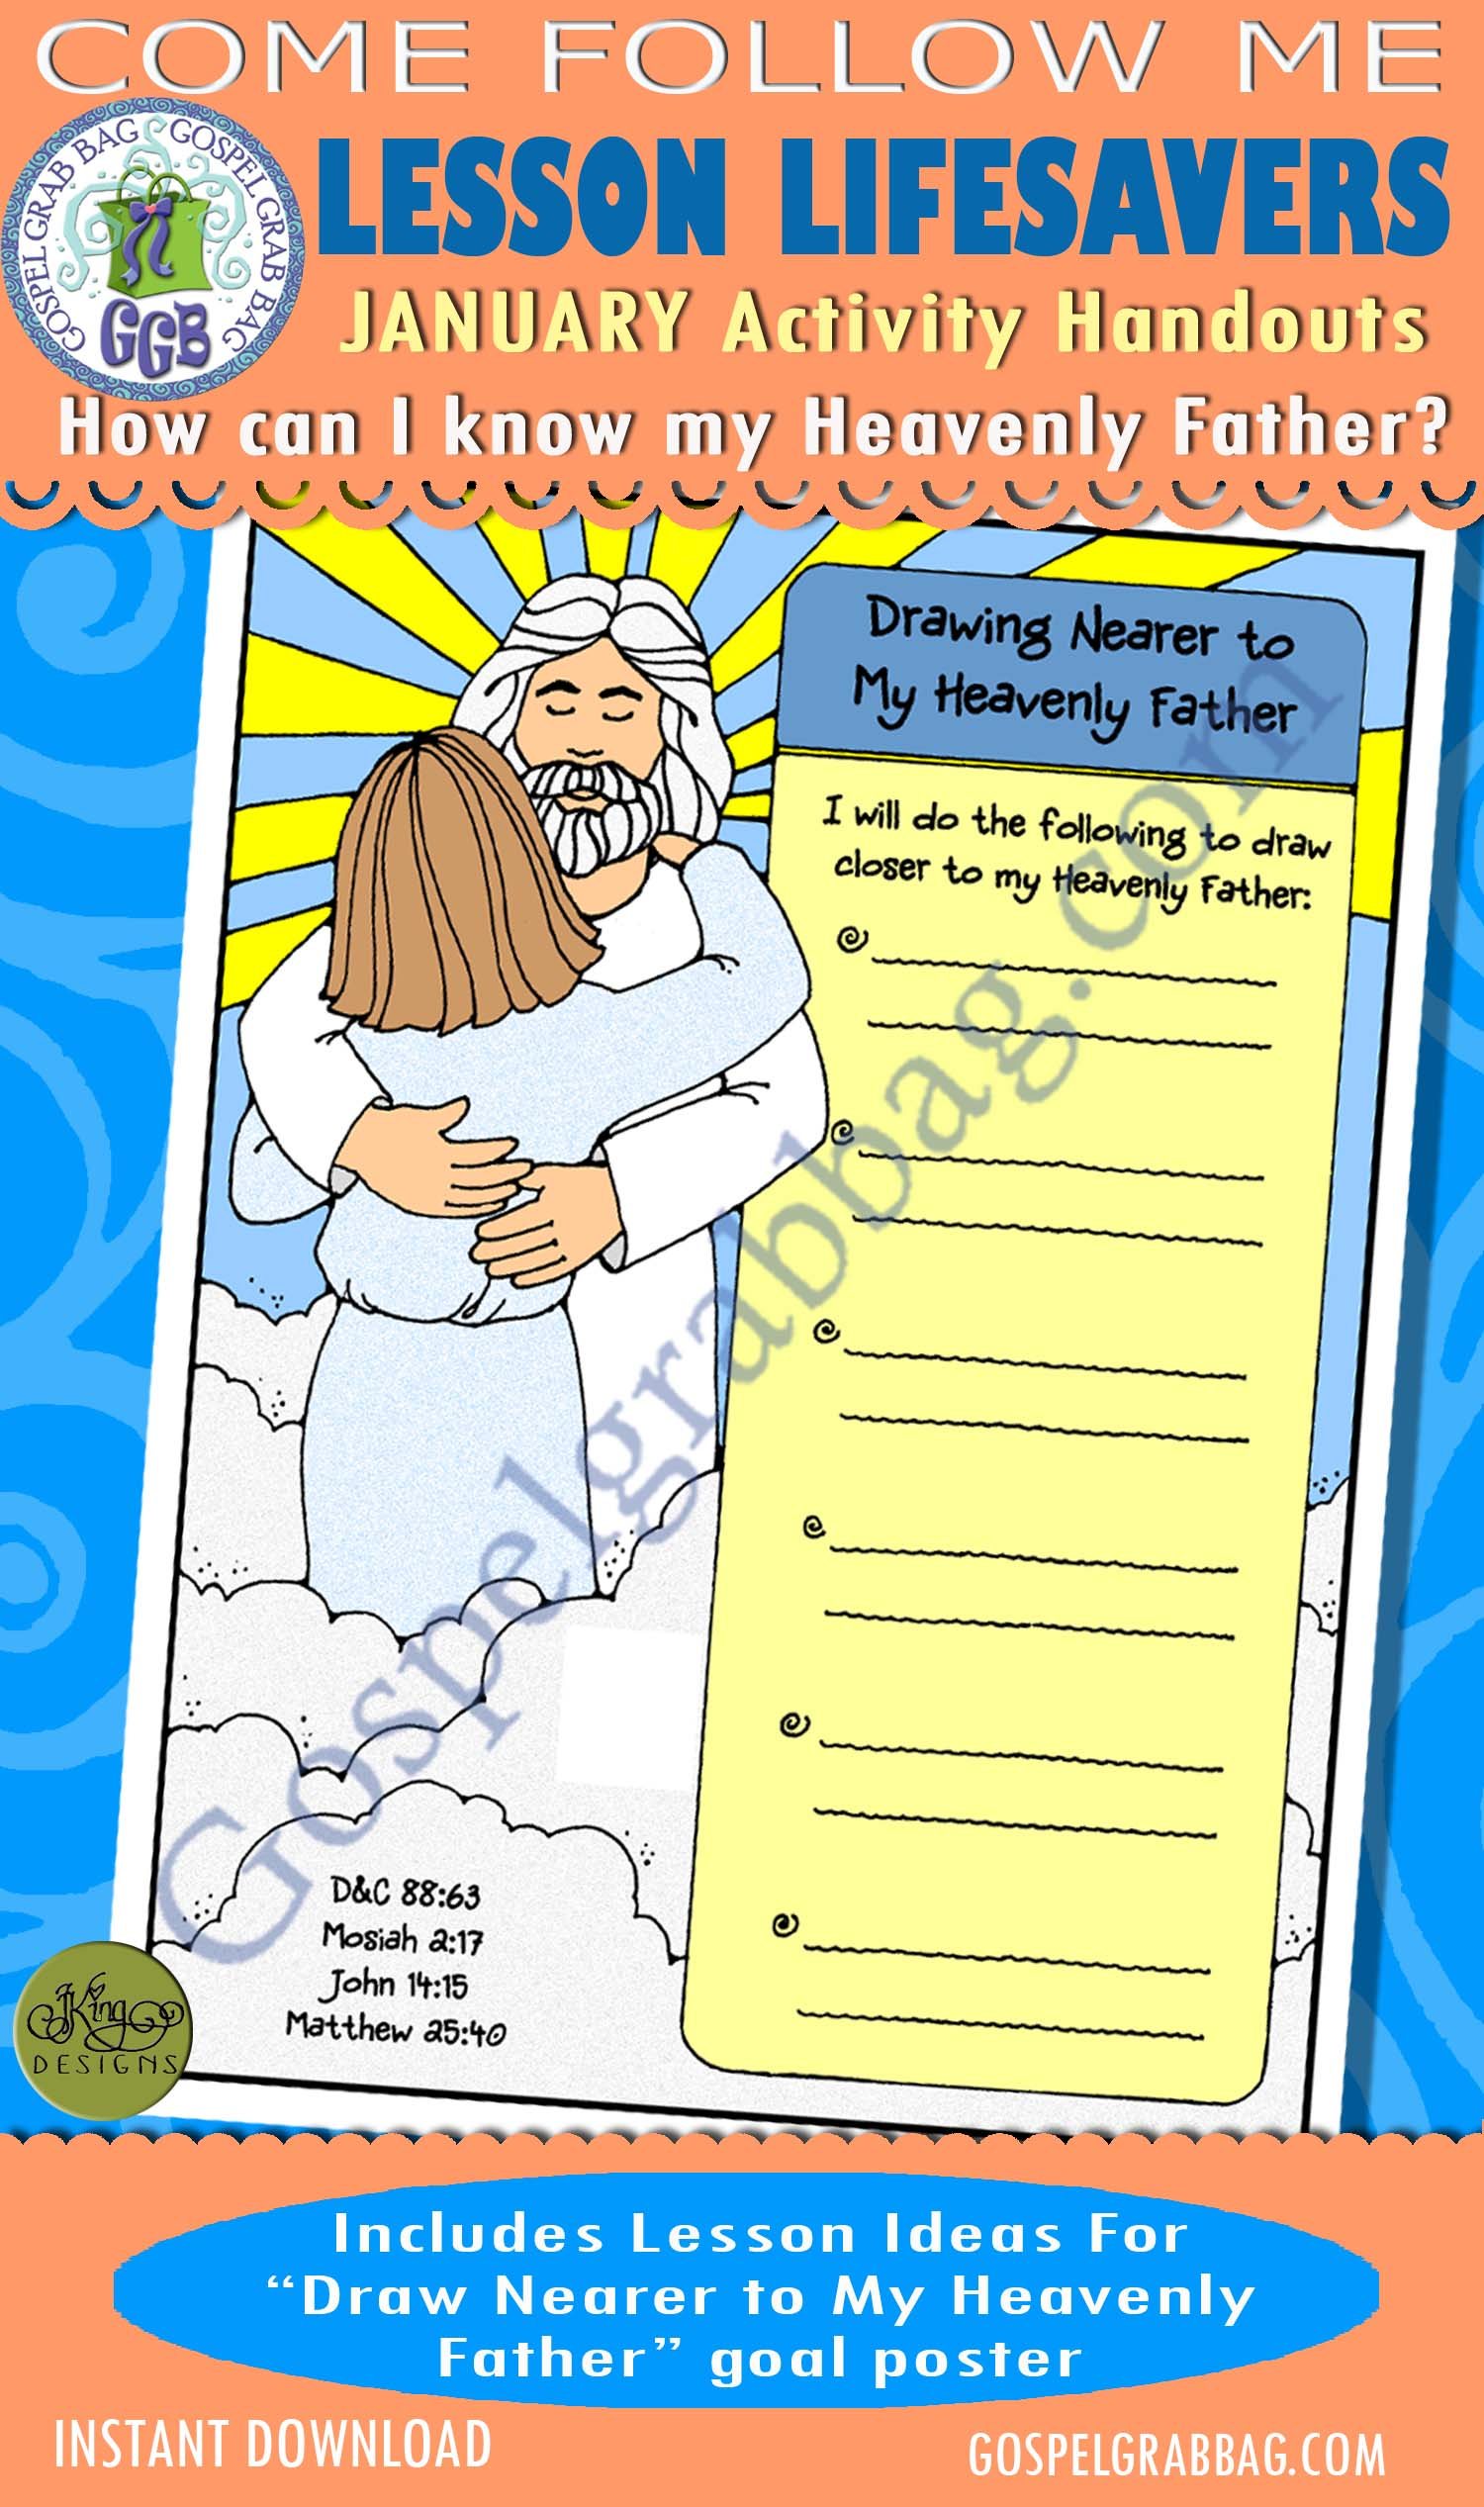 """$1.75 January Lesson 2 - Come Follow Me """"How do I know my Heavenly Father?"""" ACTIVITY: Drawing Nearer to My Heavenly Father goal poster"""